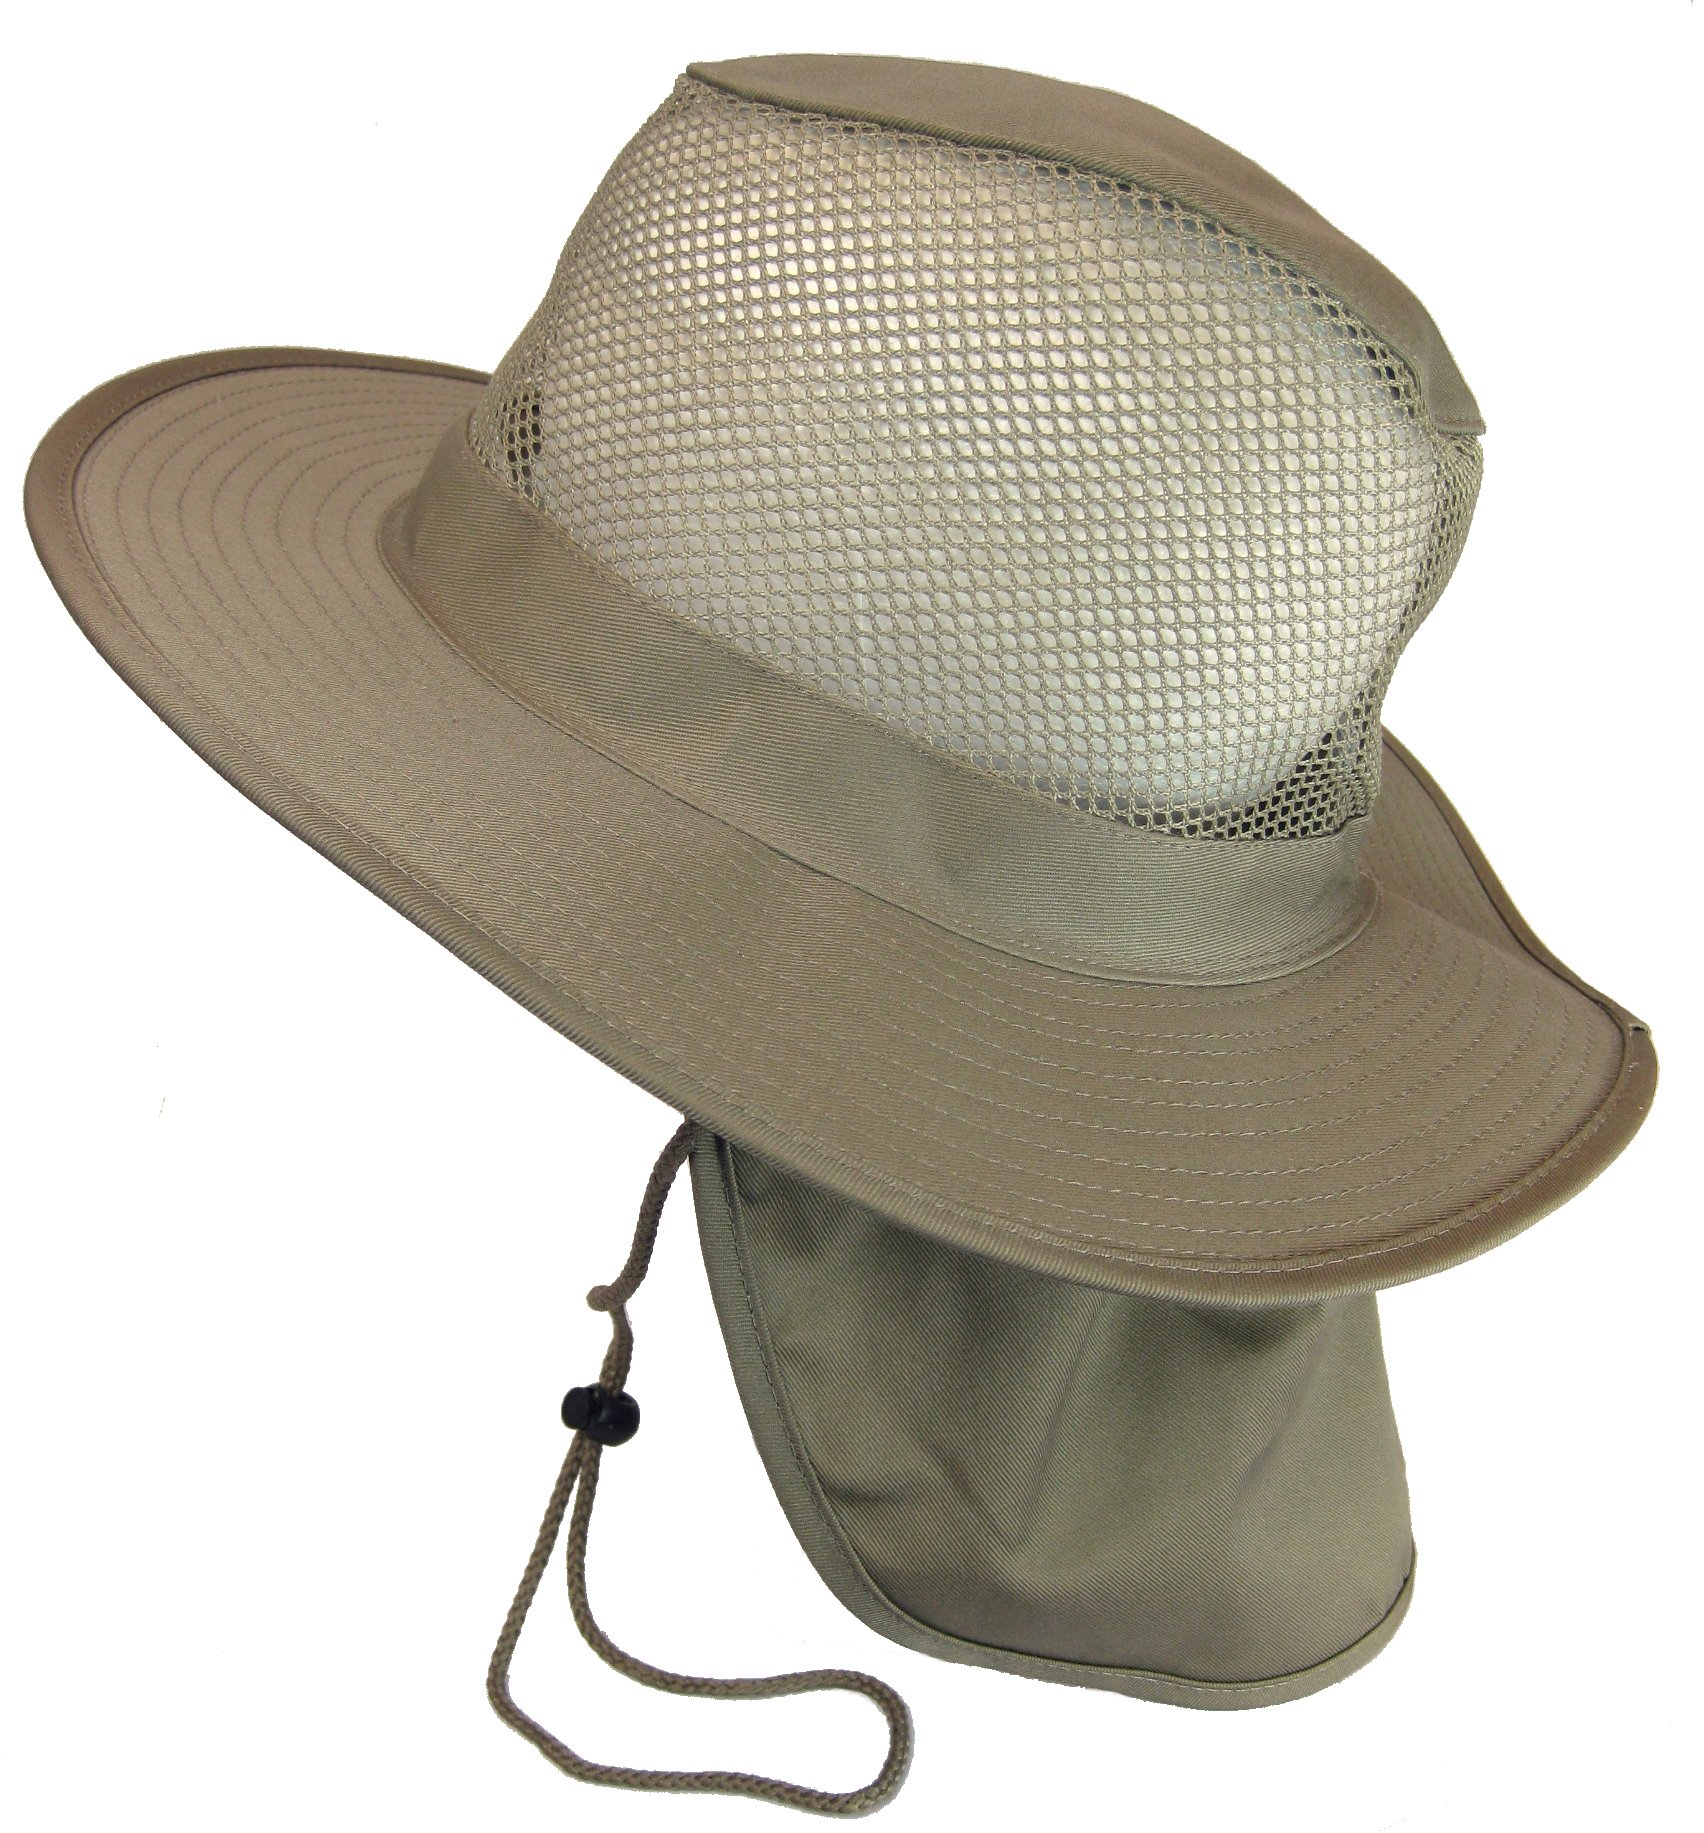 Cool Mesh Military Camouflage Boonie Bush Safari Outdoor Fishing Hiking Hunting Boating Brim Hat Sun Cap with Neck Flap (Khaki, XL)